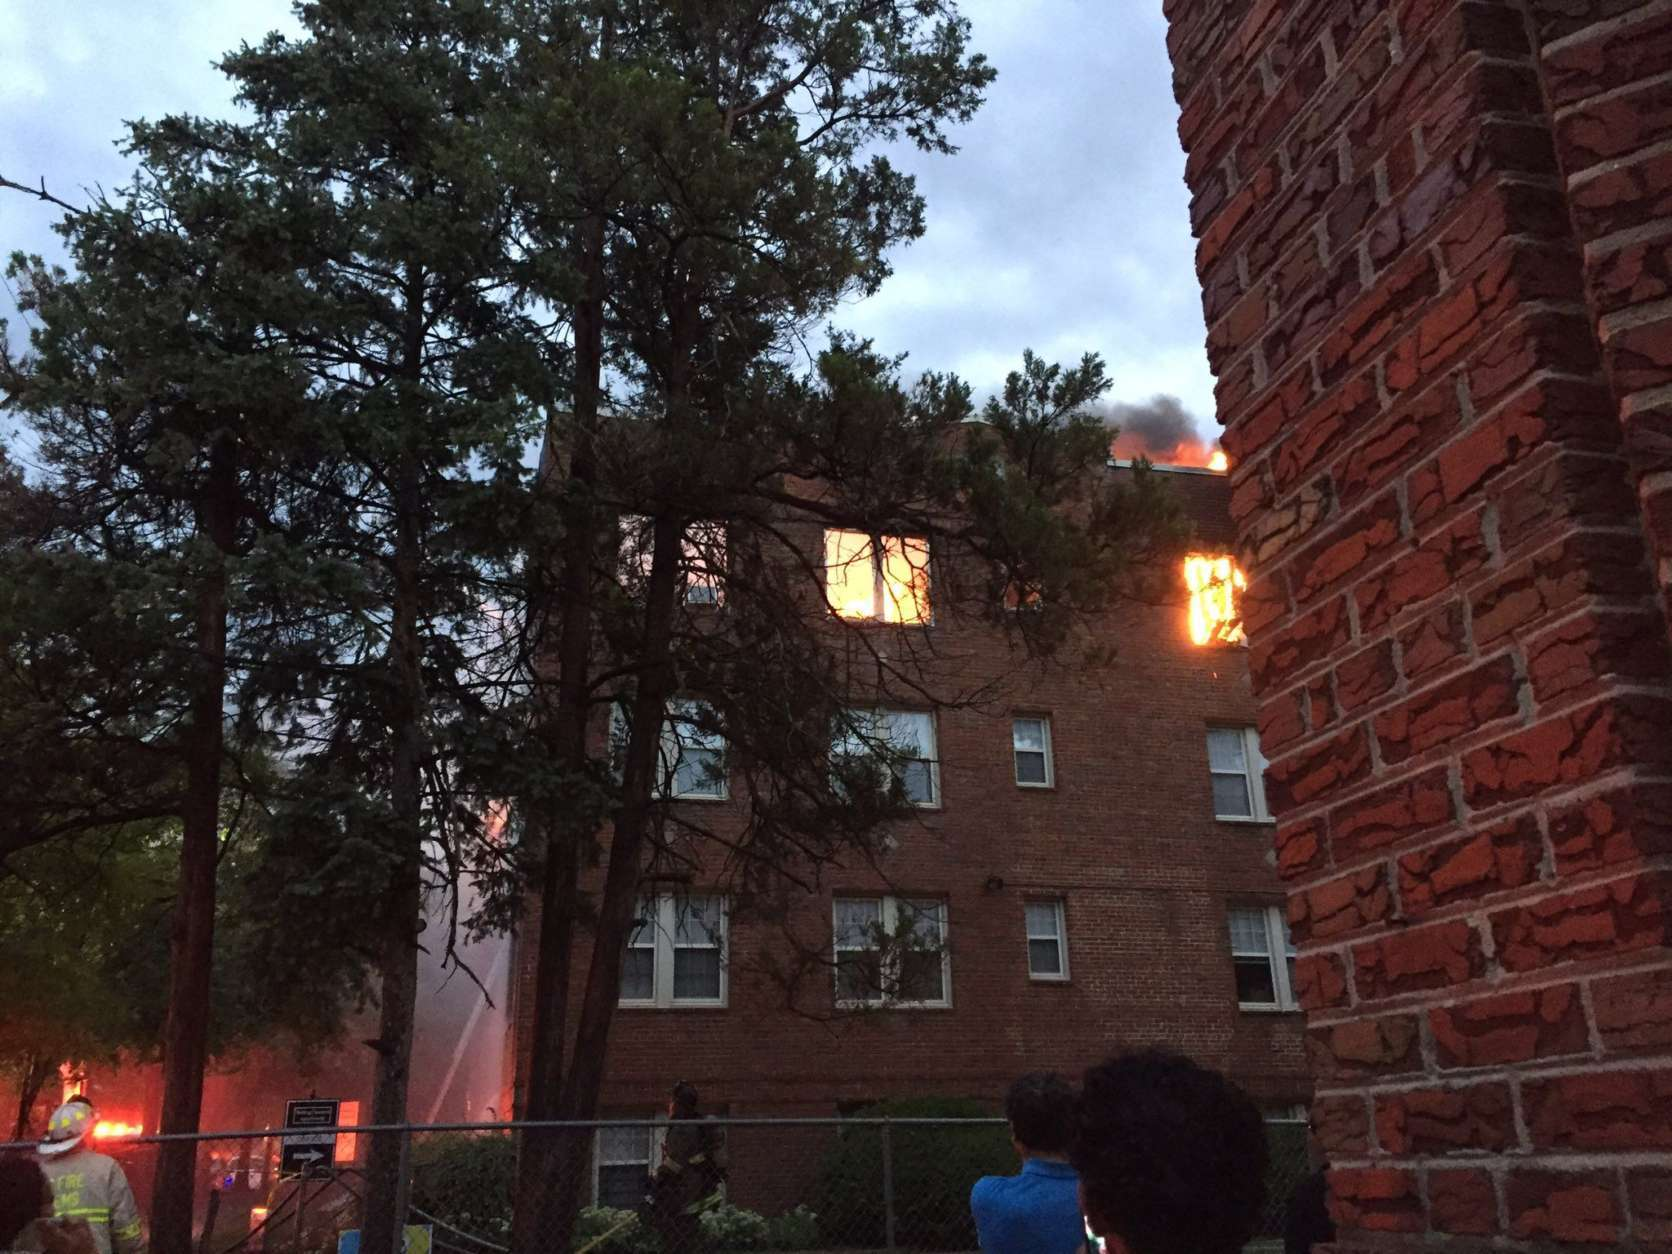 It took several hours to get the Rolling Terrace apartment fire under control. (WTOP/Dennis Foley)